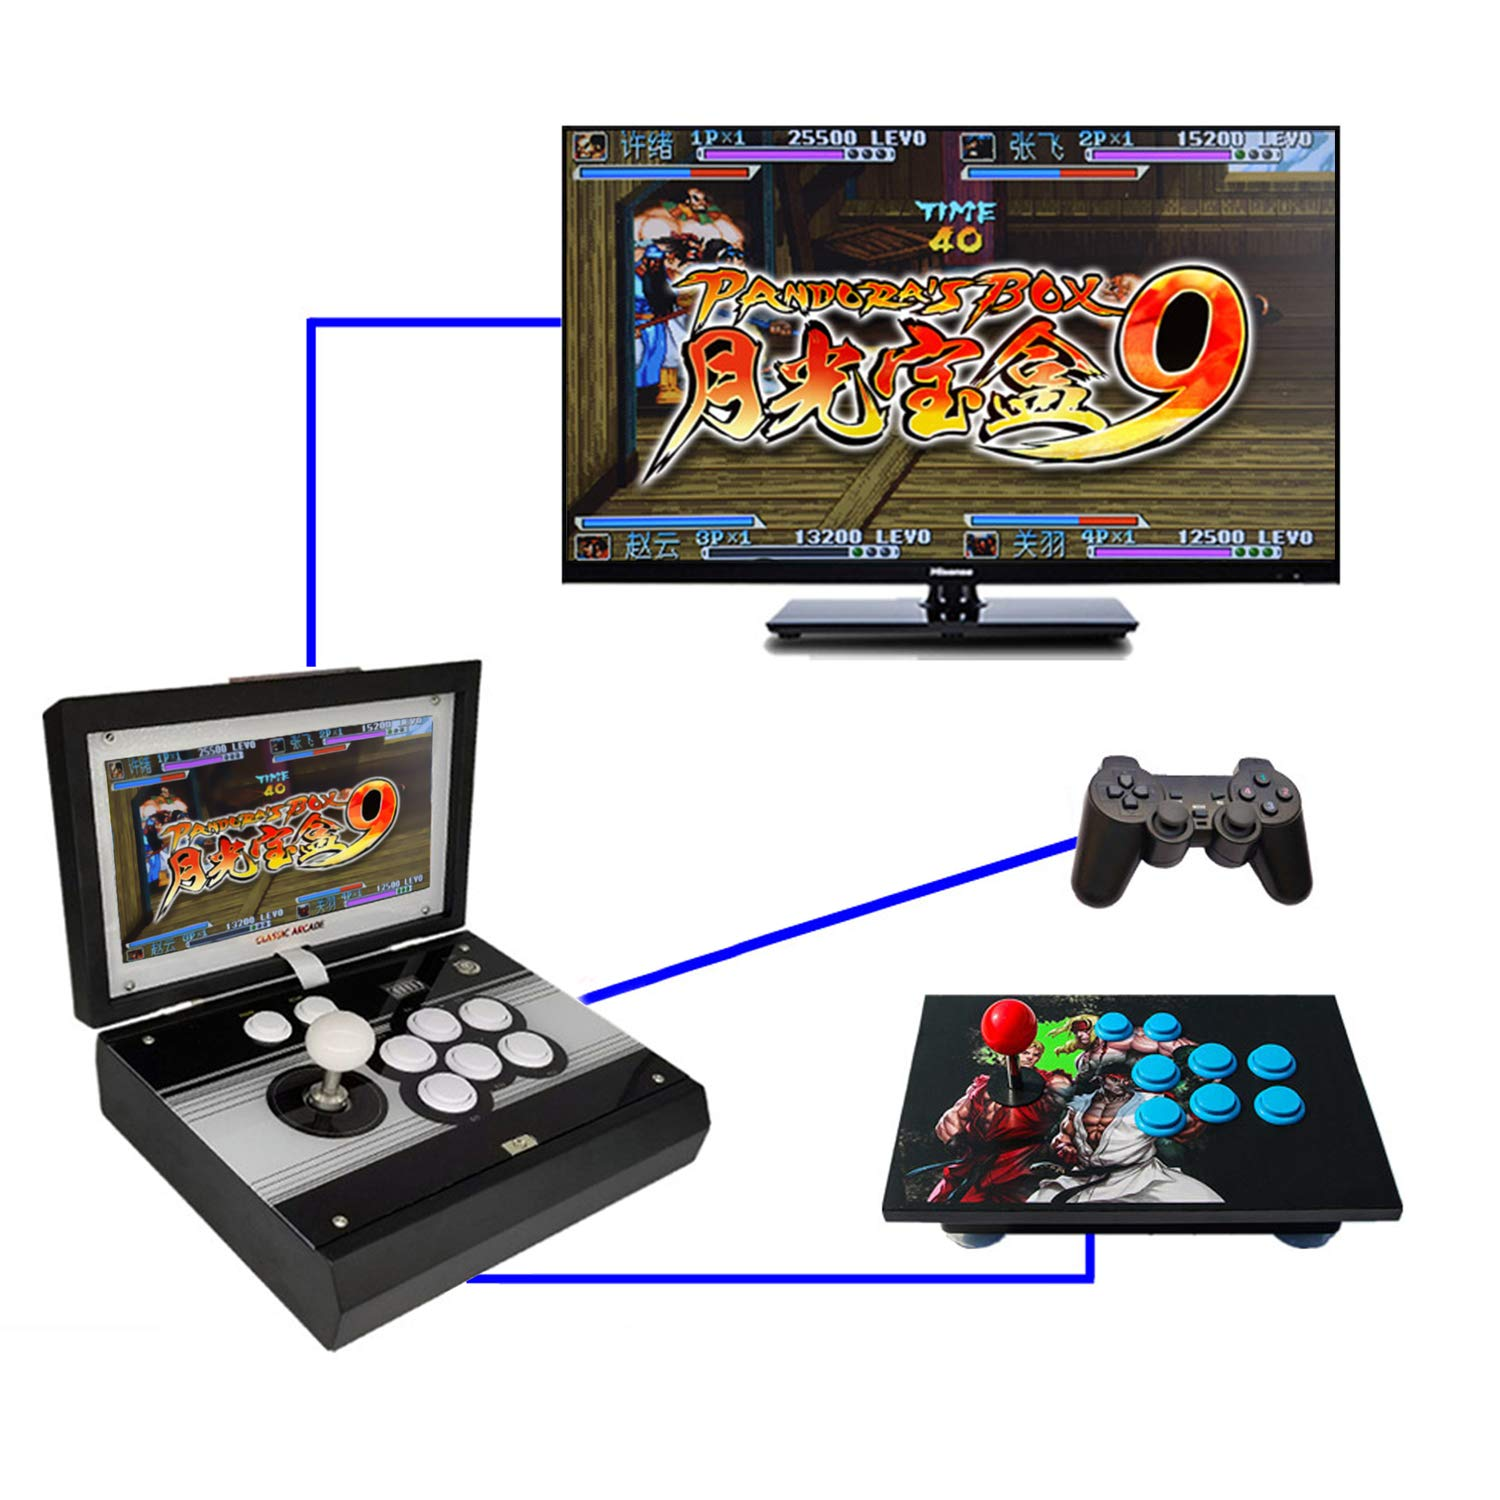 10.1 inch Portable Metal Casing Pandora 9 Arcade Video Game Console 1500 in 1 Retro Games Arcade 1280x720P HD Home Flip Single Player Game Machine by angkel (Image #2)